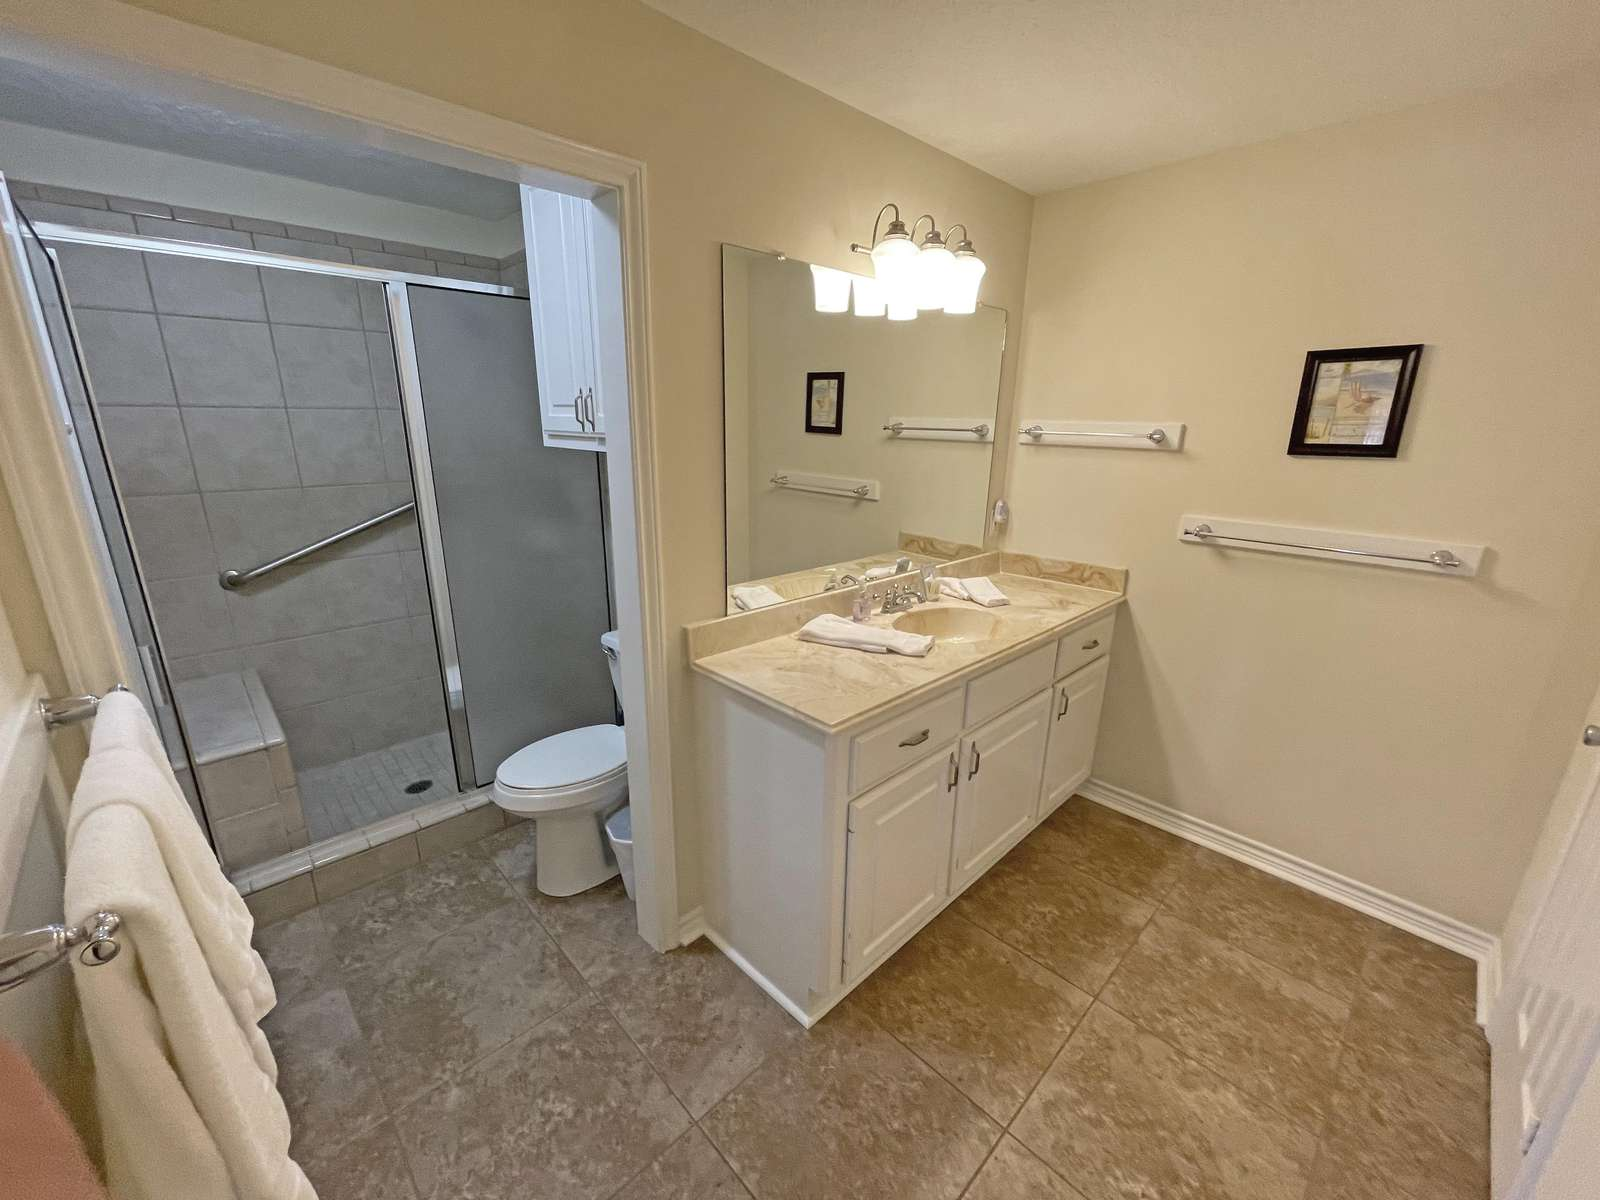 The Master Bathroom with shower.